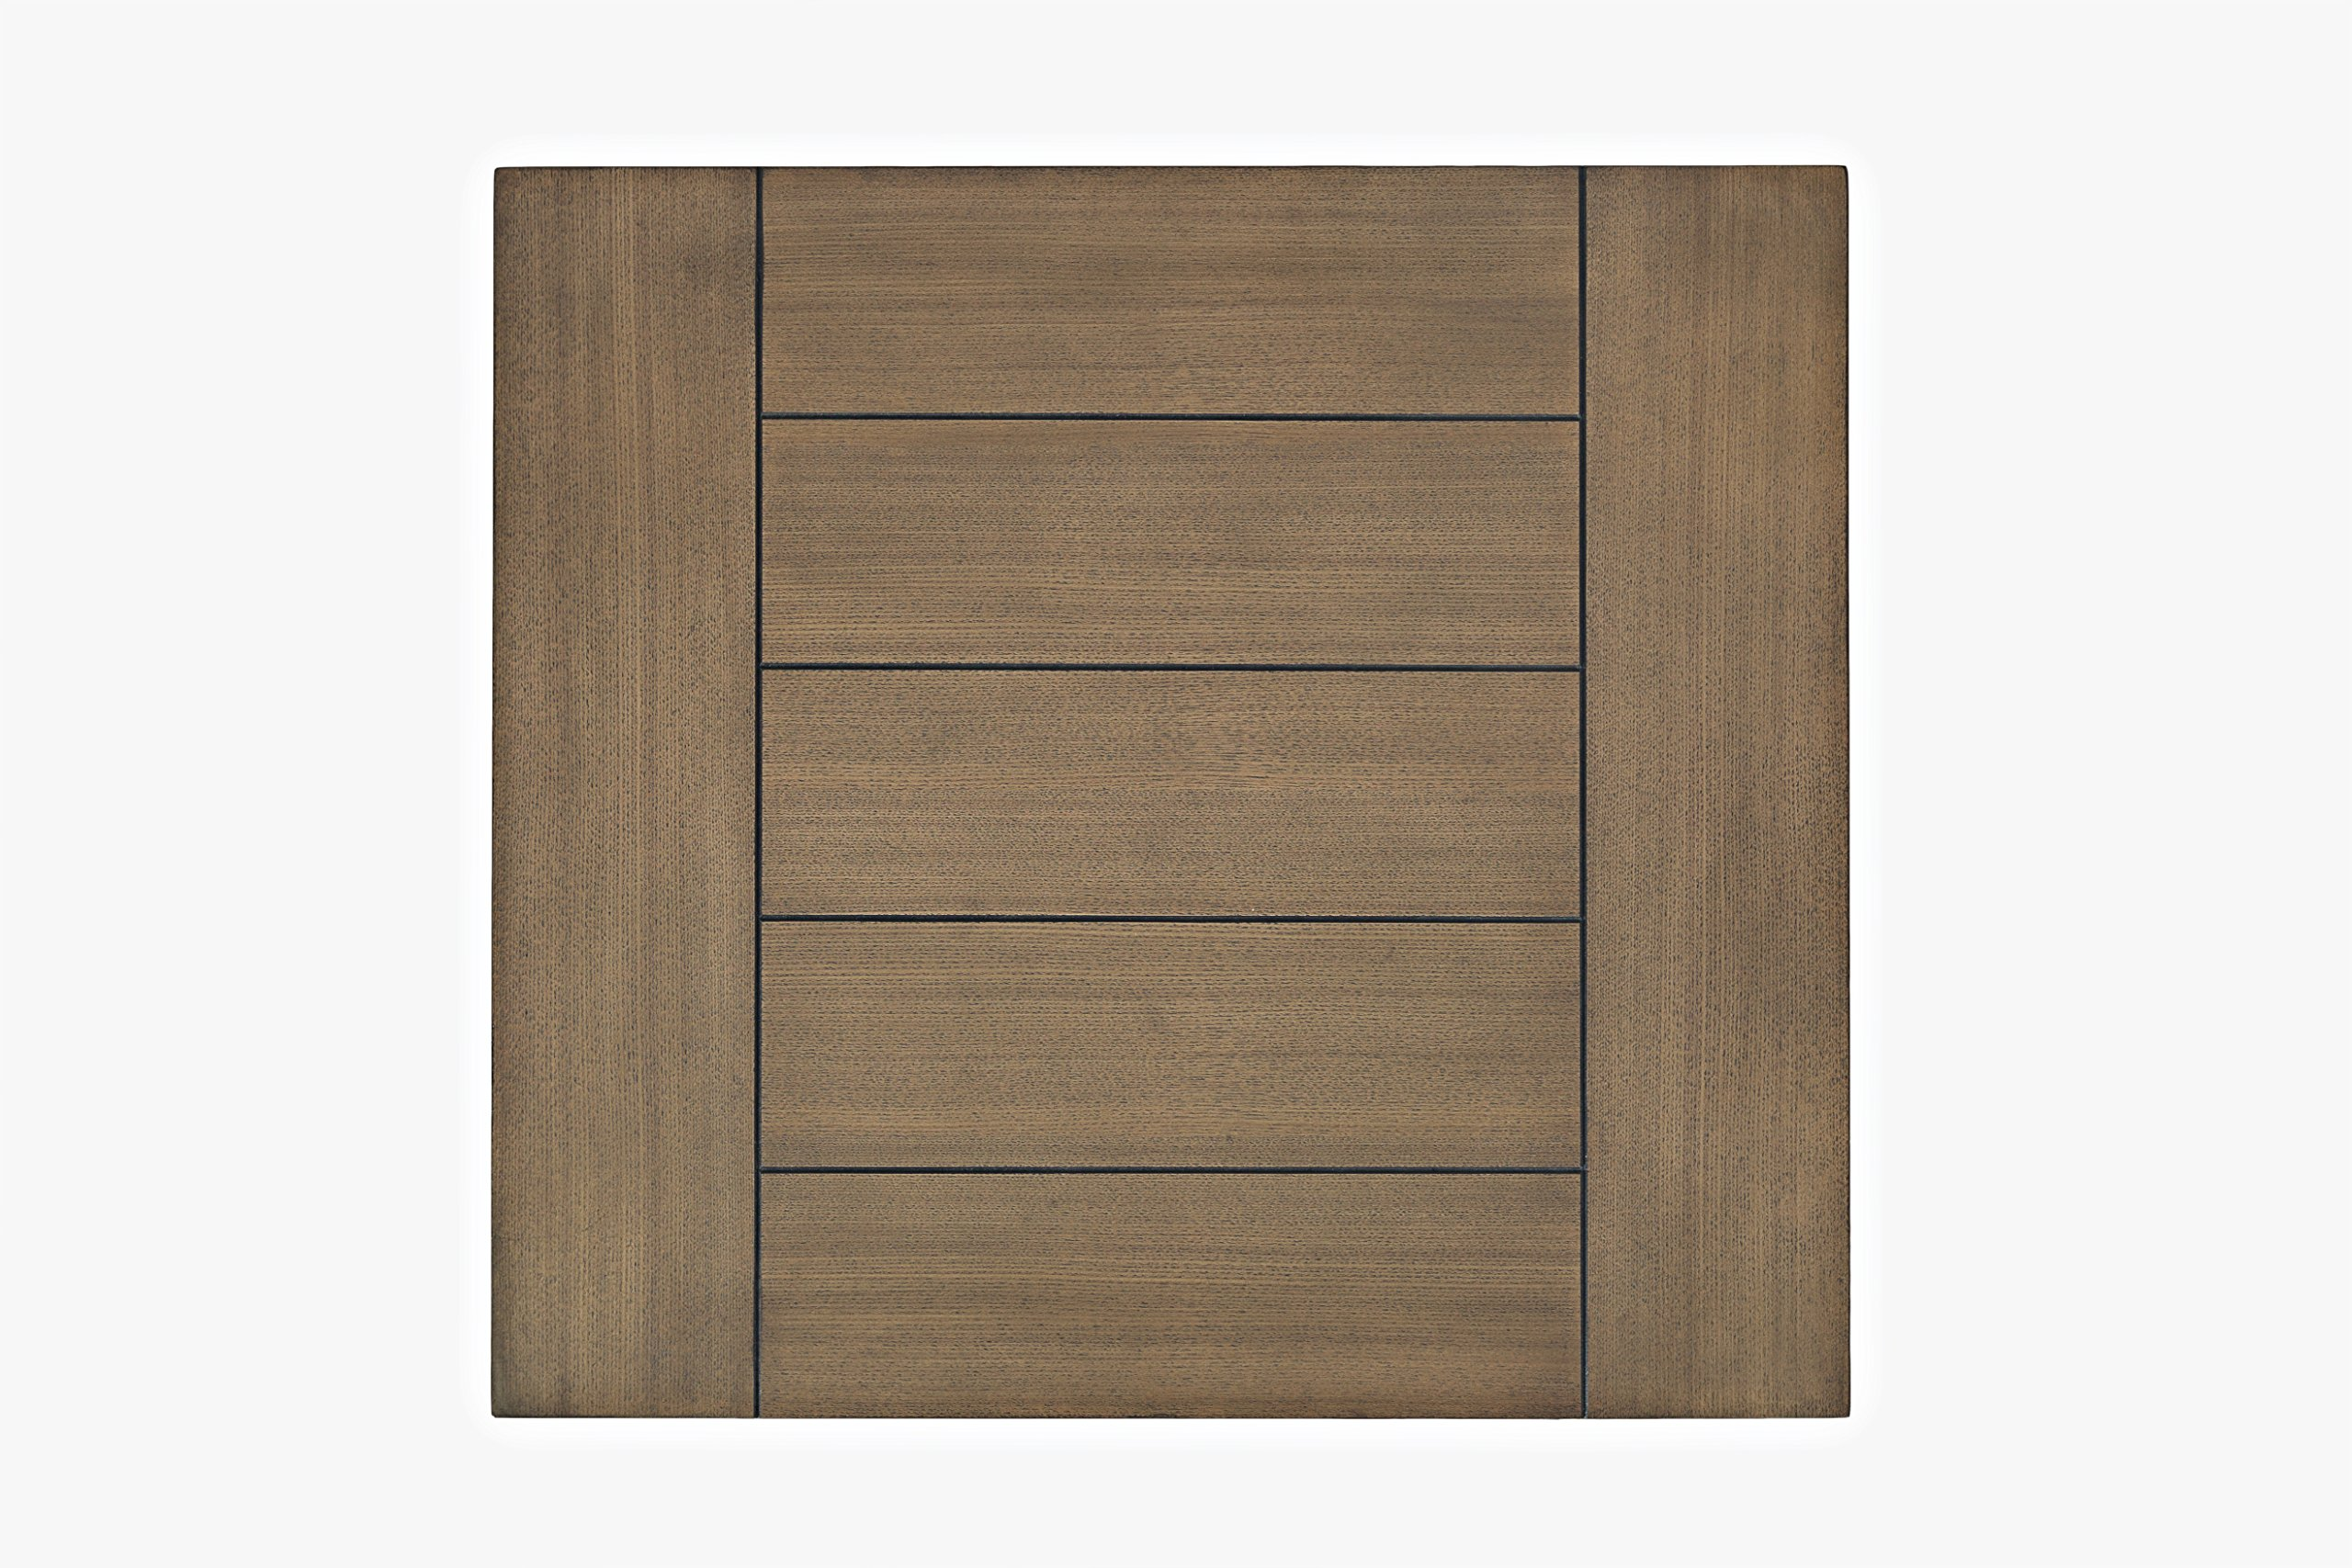 Jofran: 1623-3, Transitions, End Table, 24''W X 22''D X 24''H, Transtions Brown Finish, (Set of 1)